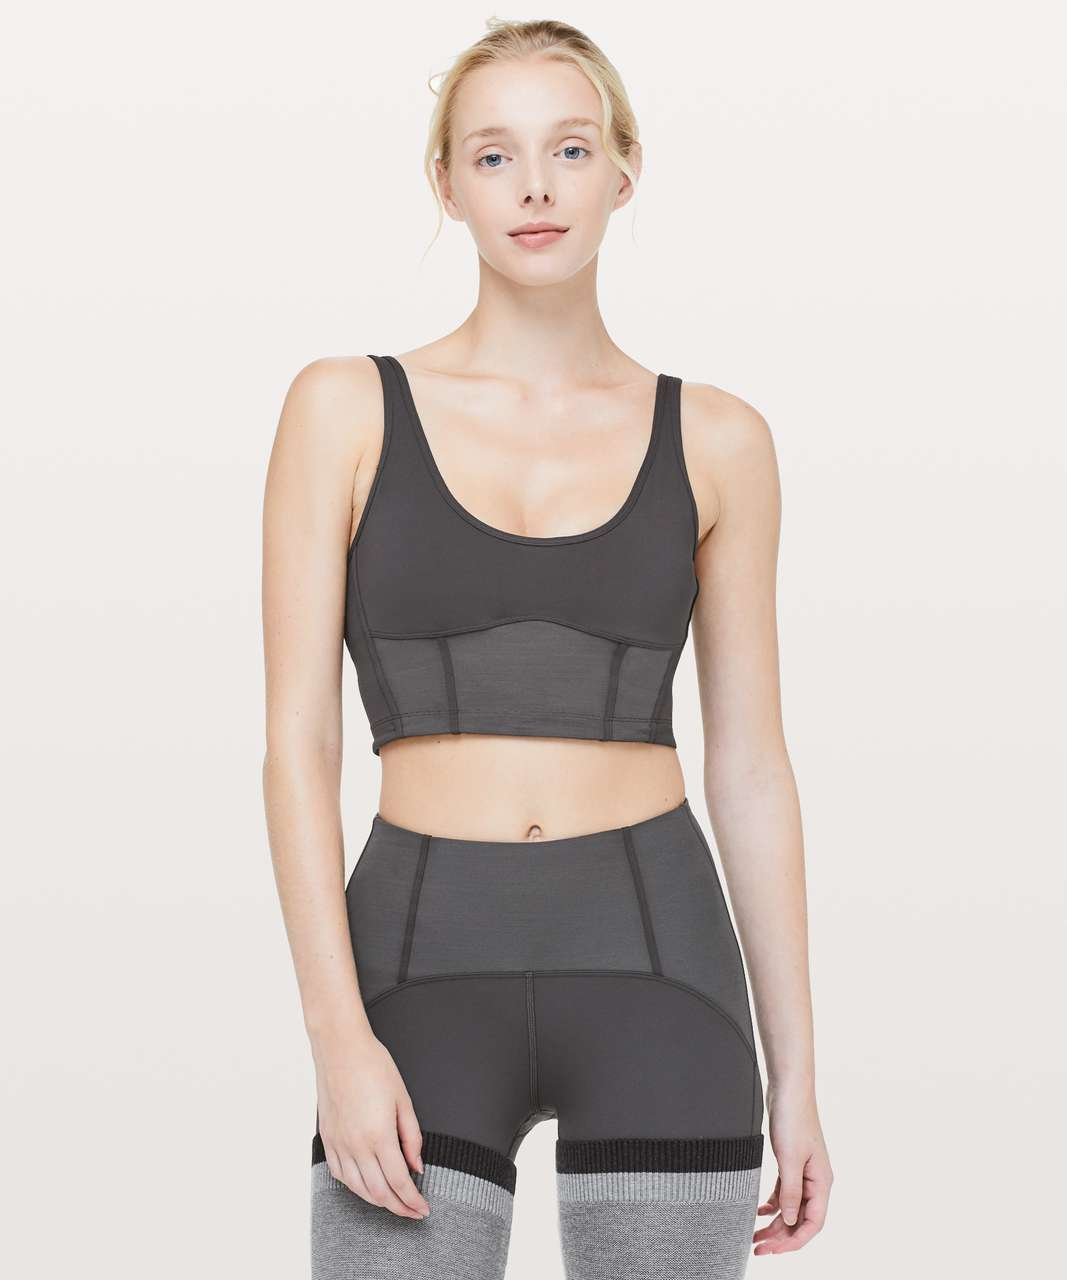 Lululemon Principal Dancer Corsetry Bra - Soot